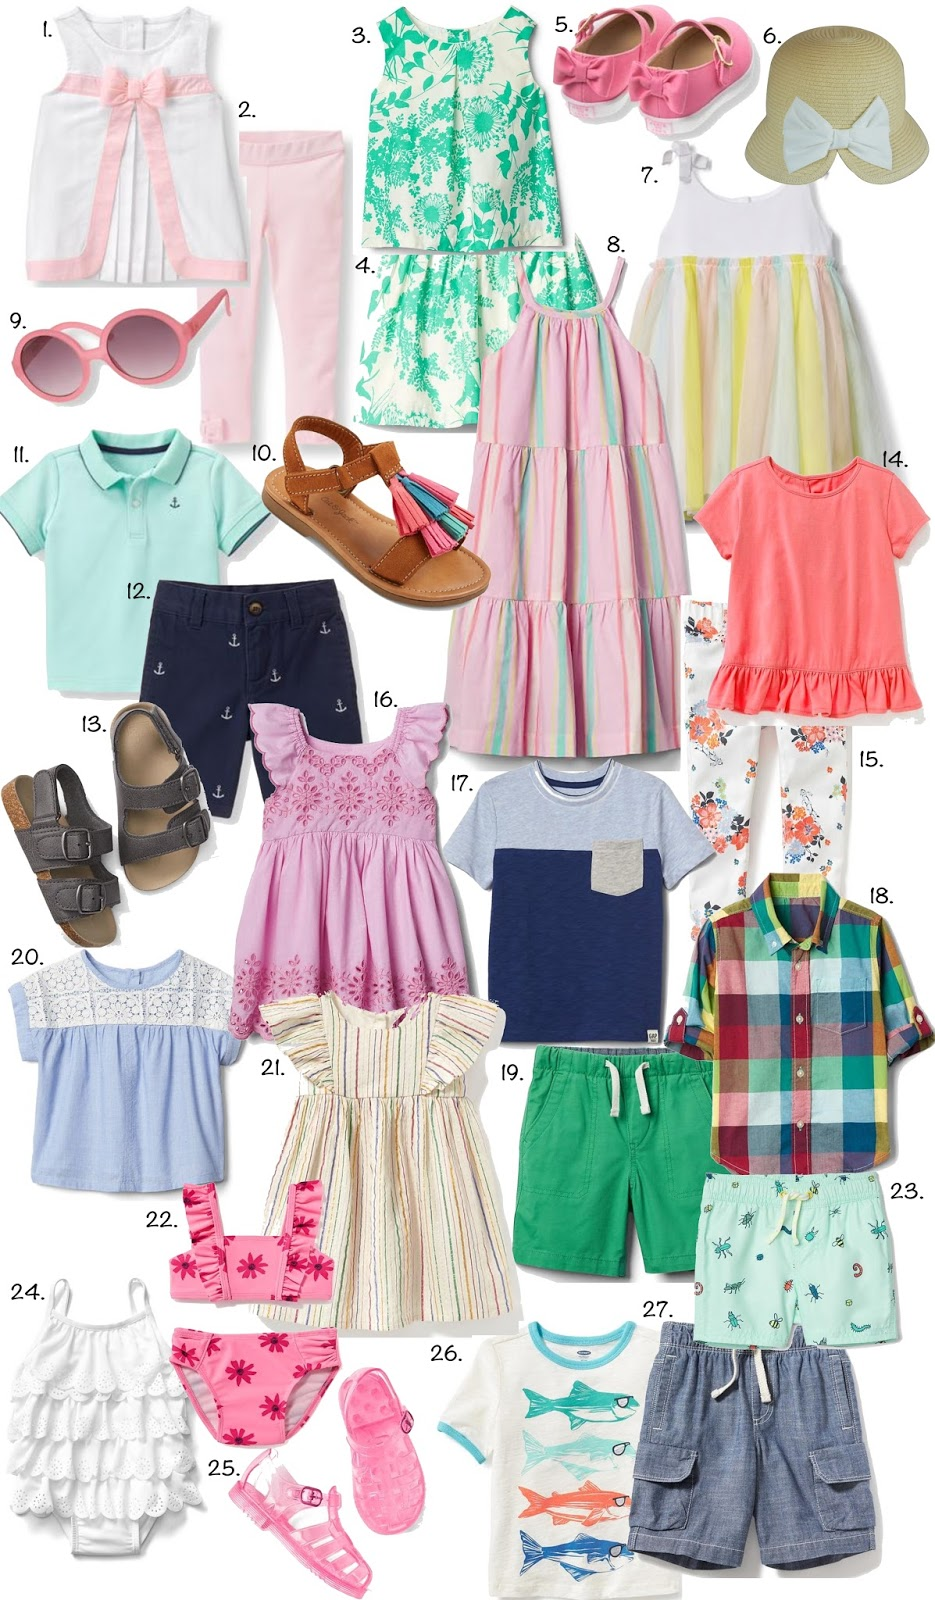 Spring Finds For Kids - Something Delightful Blog